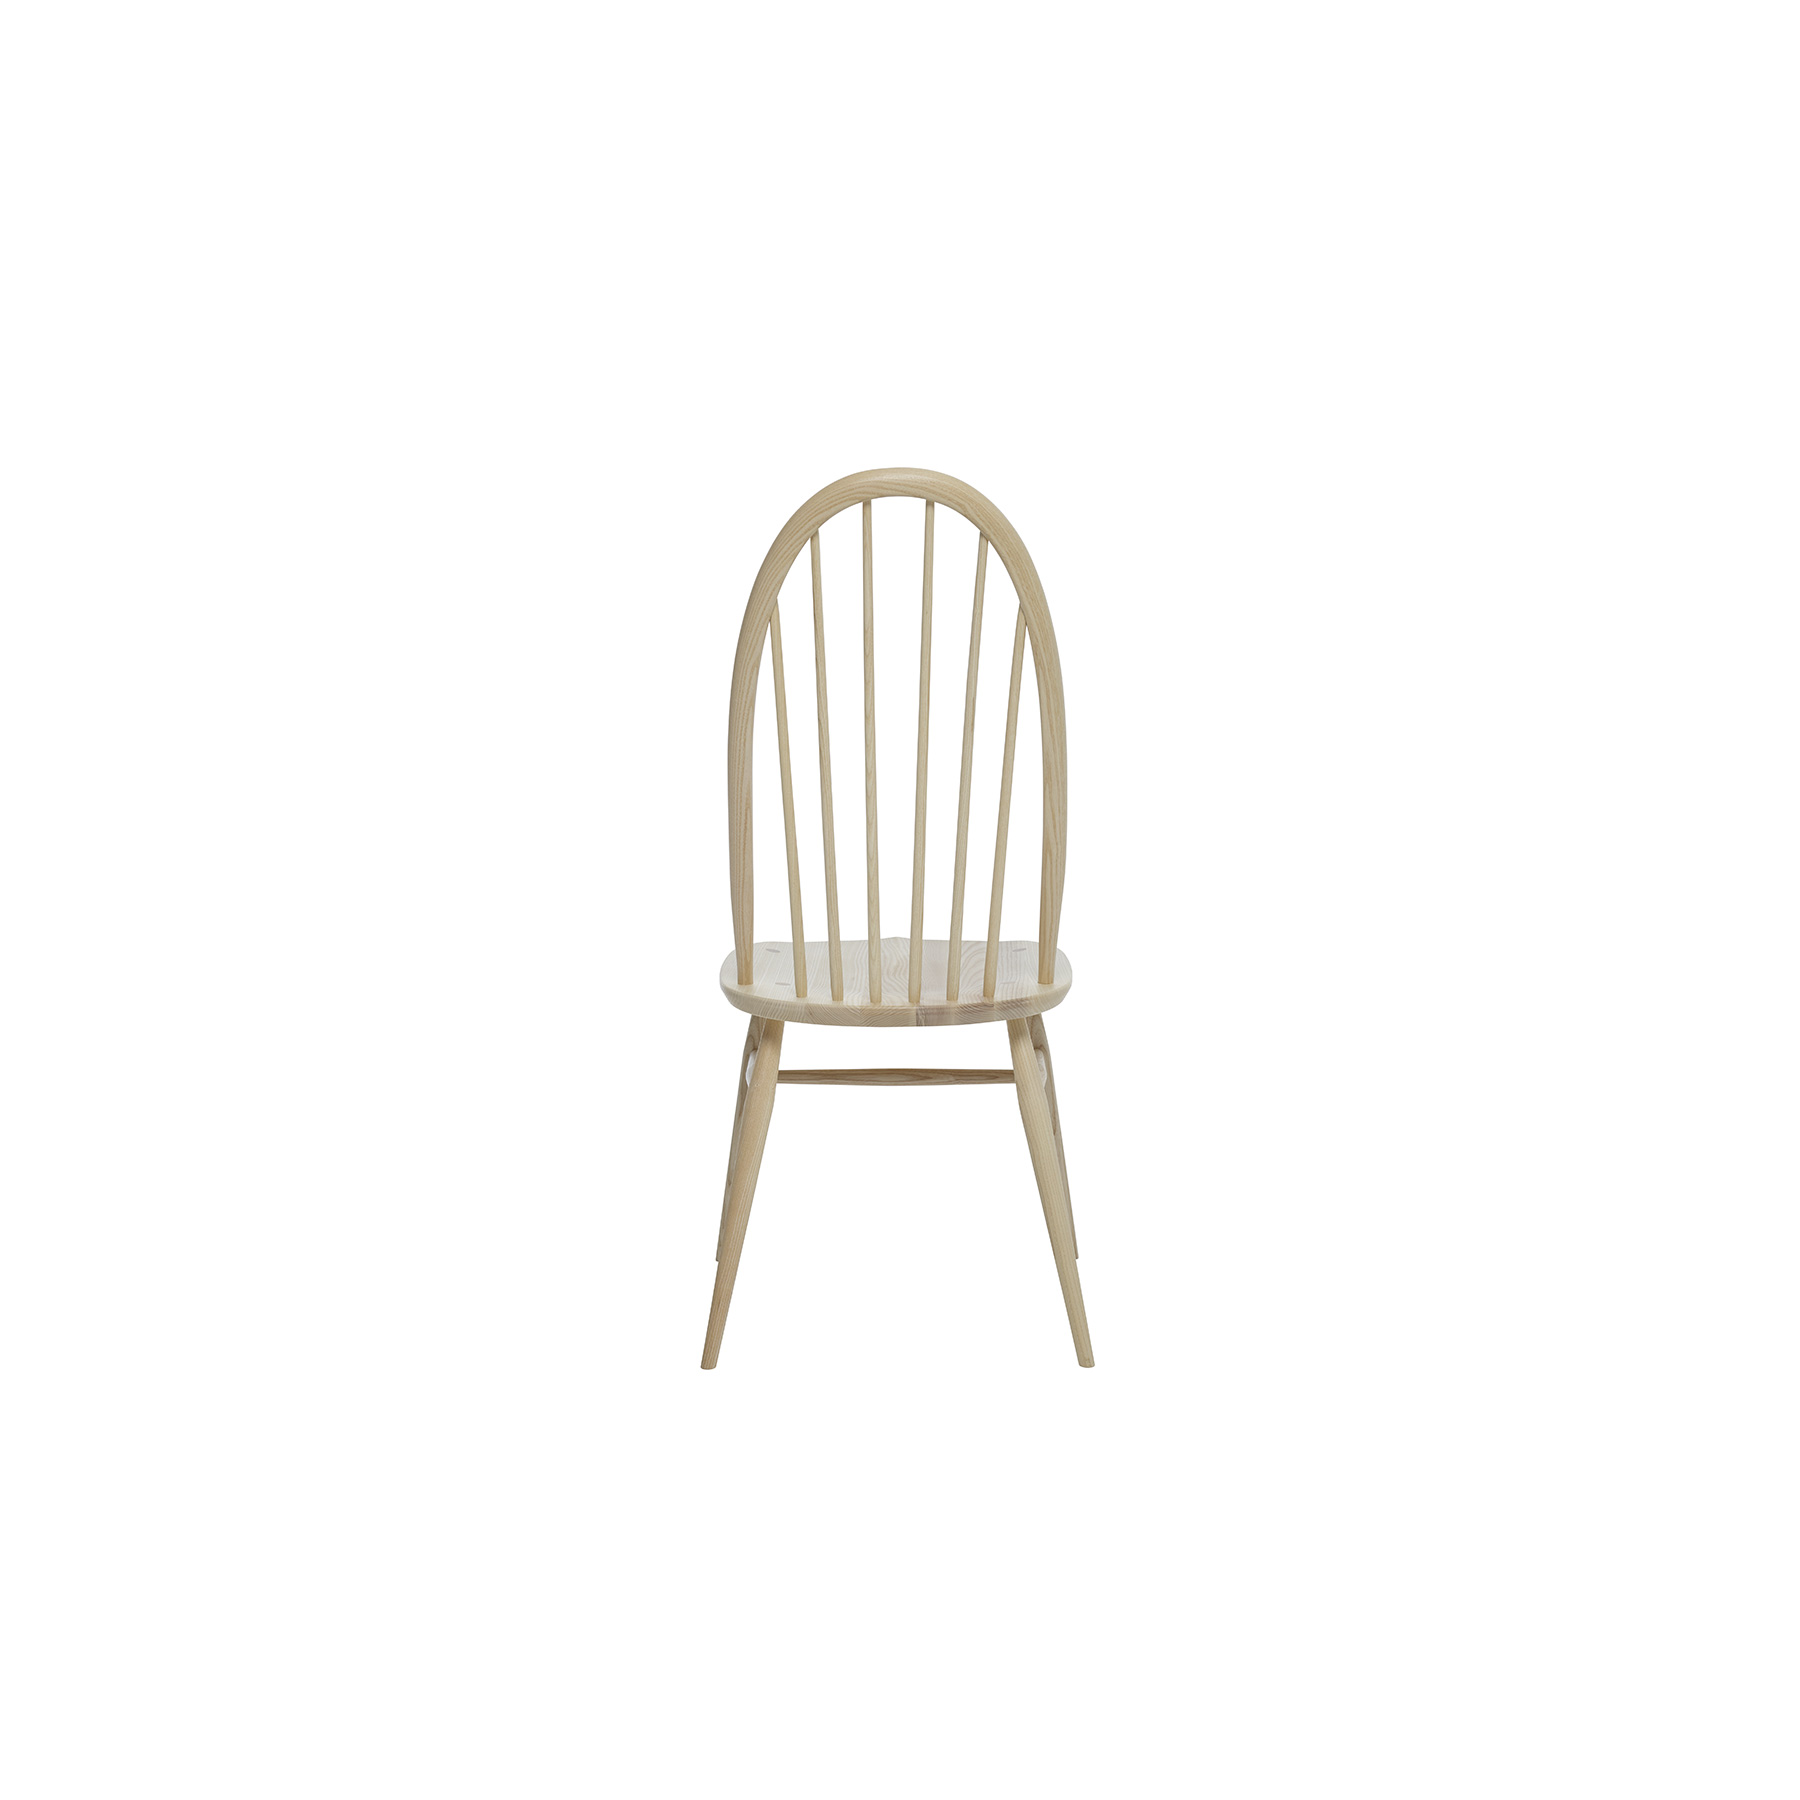 Originals Quaker Dining Chair - <p>The Ercol Originals are pieces of timeless and classic design that never date or show their age. It is furniture that is as relevant and as functional now as it was when it was created in the 1950s and 1960s. This furniture was designed by Ercol's founder, Lucian Ercolani, who drew for his inspiration on the time-proven local design and craft in the Chiltern Hills around where he lived and built his first factory in 1920 in High Wycombe. Using the strength of beech and the beauty of elm he carried this definition on into a huge variety of dining, kitchen, and school chairs and then extended the idiom into the low easy chair range epitomised by the 206 armchair and the studio couch. The beauty of the colour and the grain of the elm took Lucian on to use elm for the tables and cabinets of the Originals and the following Windsor range. The perfect addition to any home, this Quaker dining chair compliments both traditional and contemporary decor. An evolution of the Windsor design, this chair presents a tall u-shaped, six spindles back and sculpted oval seat for a supportive sit. The chair bow is steam bent from a single straight ash rail into this amazingly tight radius bend and then sanded and shaped to give its subtle and elegant profile. Traditional wedge joints, where the legs come right through the seat and a wedge is then inserted into a cut before the leg stump is hand sanded flush with the seat, both provide a lovely design detail and a very strong joint. Further strength is provided by the H-underframe. This timeless dining room furniture is designed to complement any of the dining tables in the range and will be finished in your choice from a selection of ercol lacquer colours. </p>  | Matter of Stuff